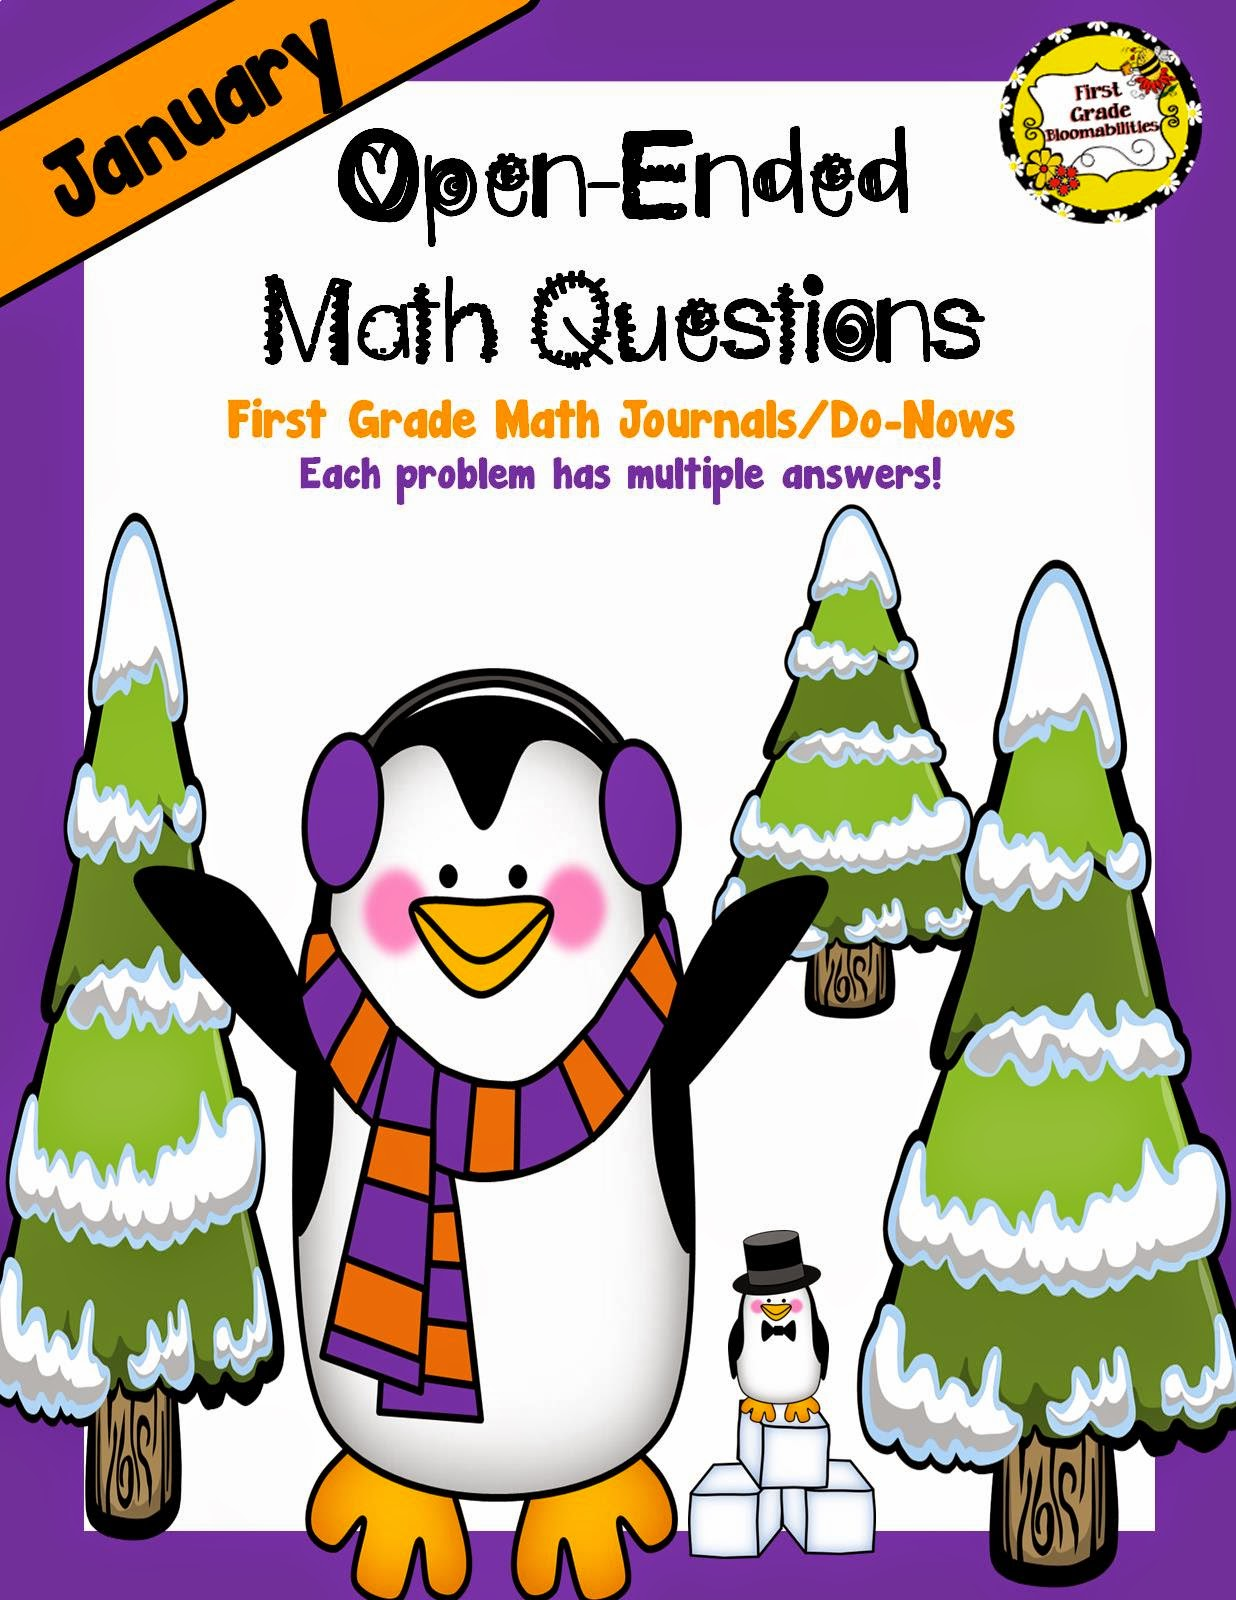 http://www.teacherspayteachers.com/Product/January-Open-Ended-Math-Questions-for-Journals-or-Do-Nows-First-Grade-1600526